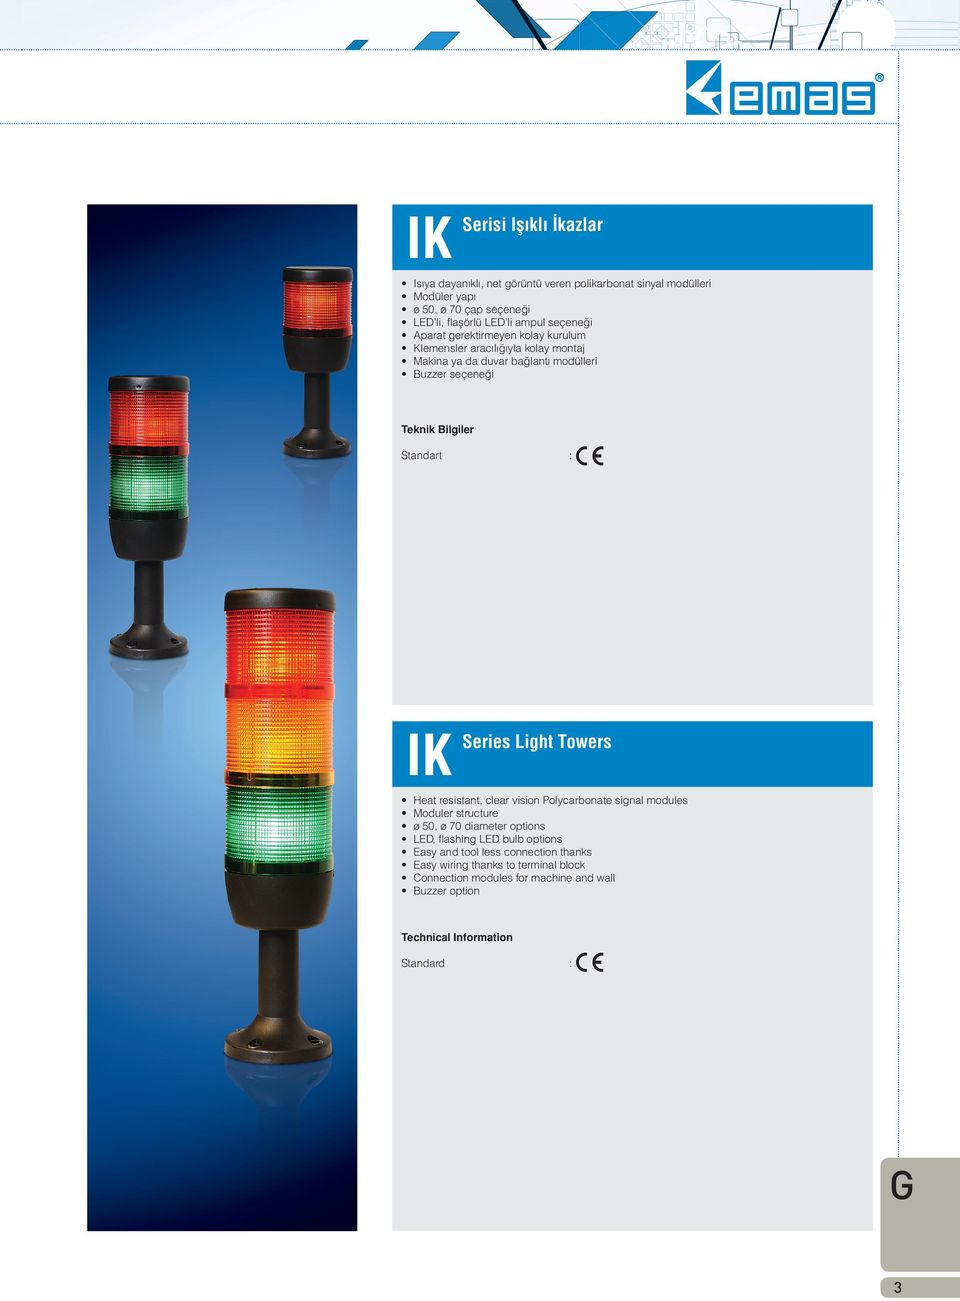 Standart : IK Series Heat resistant, clear vision Polycarbonate signal modules Moduler structure ø 50, ø 70 diameter options, fl ashing bulb options